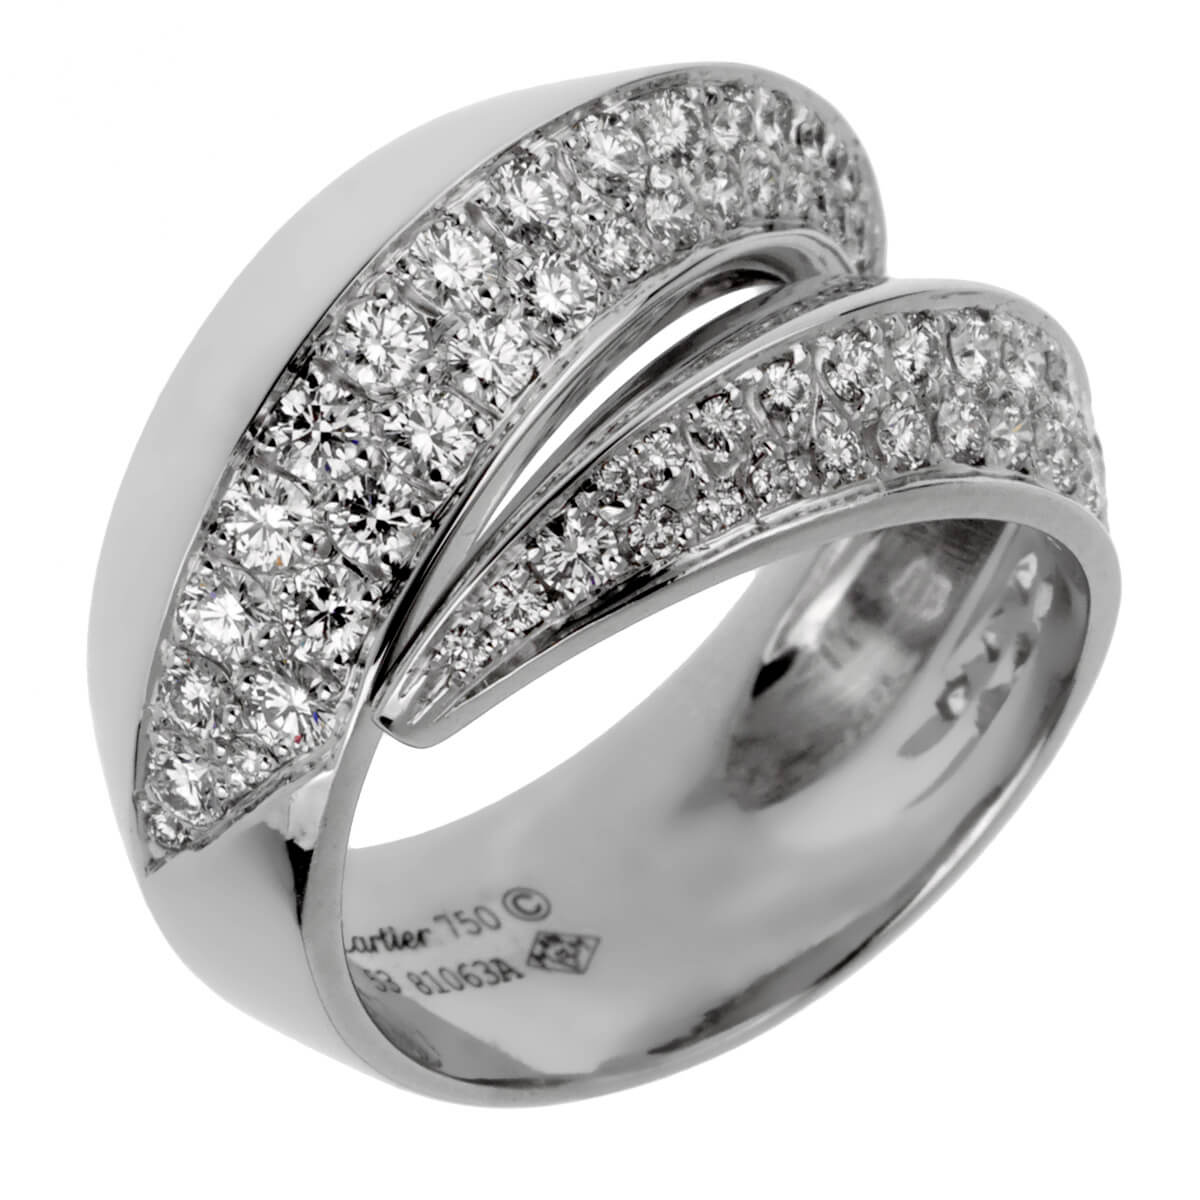 Cartier Panthere White Gold Diamond Cocktail Ring